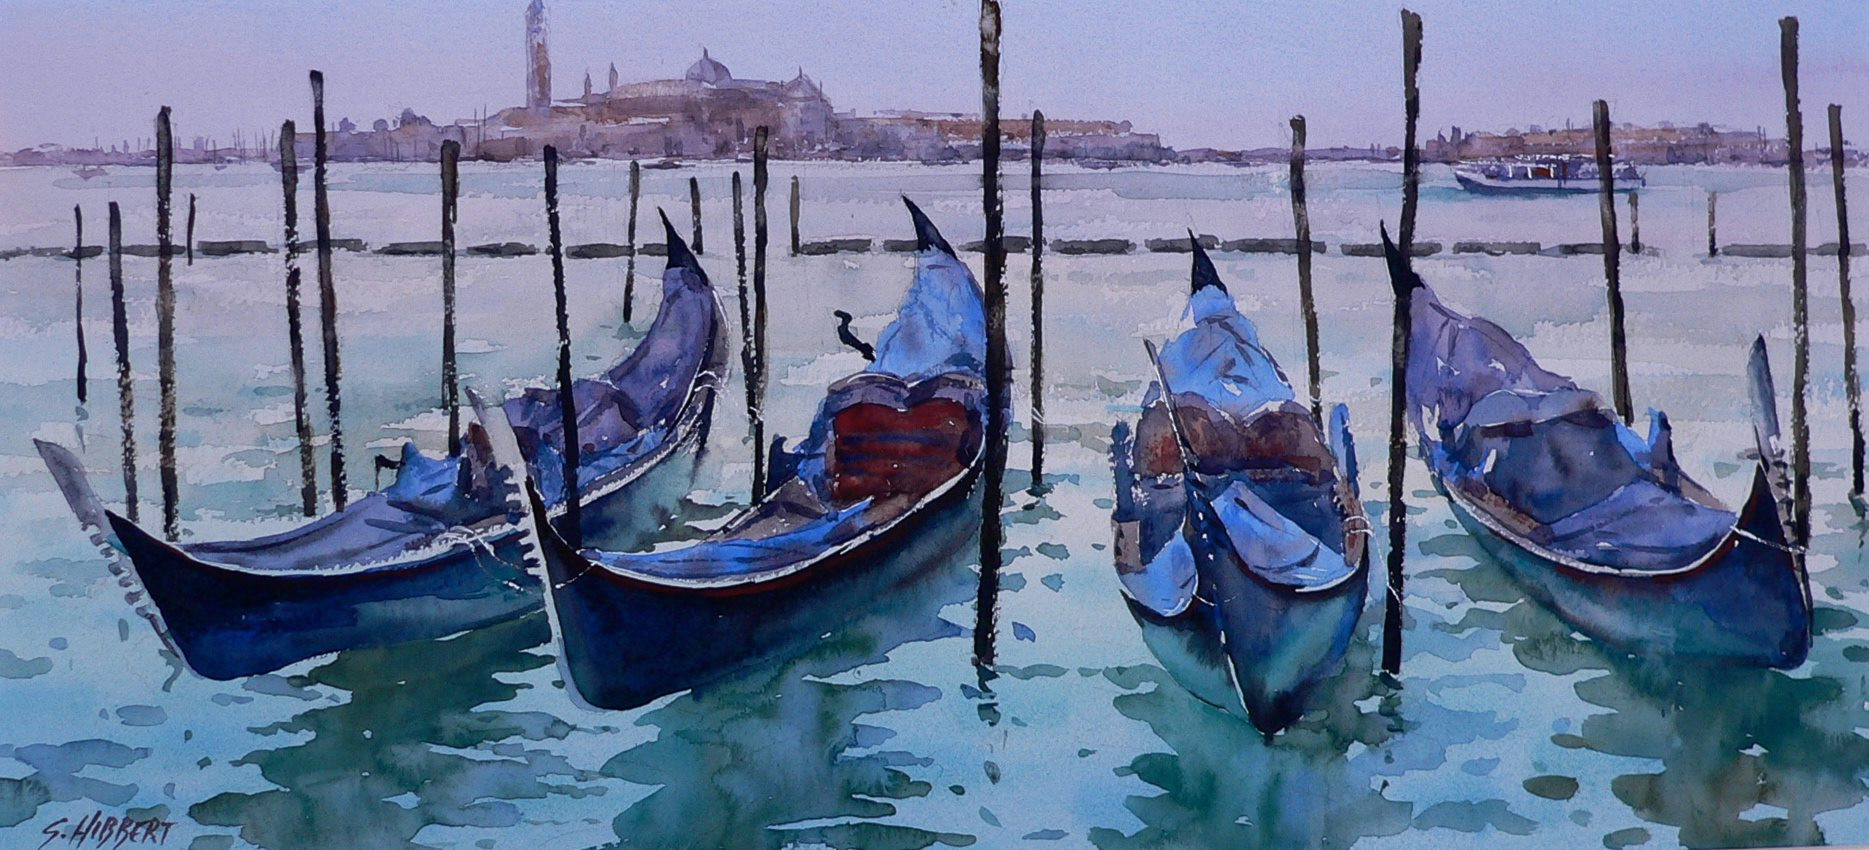 Venice Reflections, sold